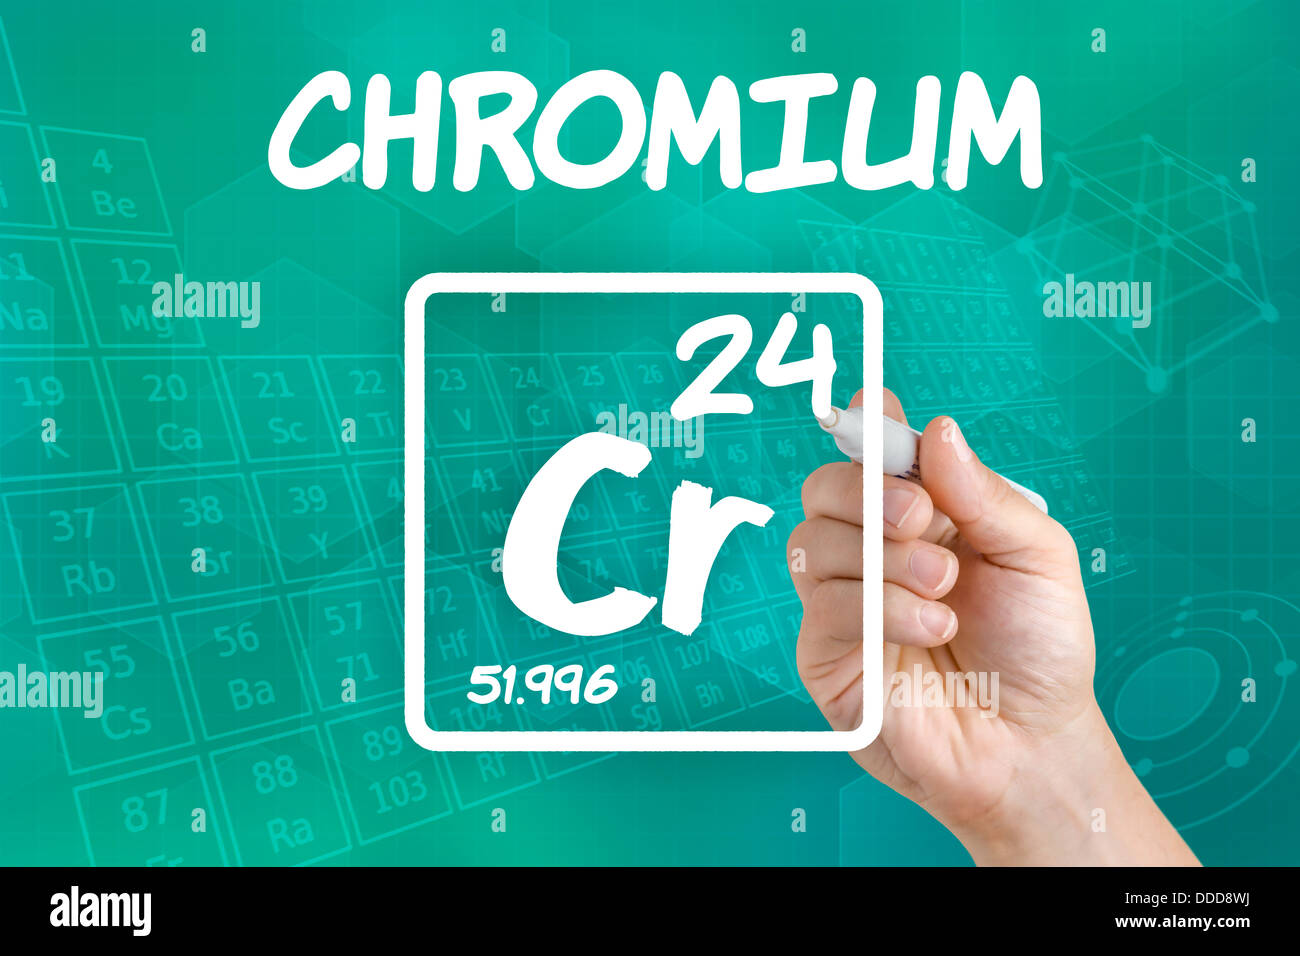 Symbol For The Chemical Element Chromium Stock Photo 59913998 Alamy